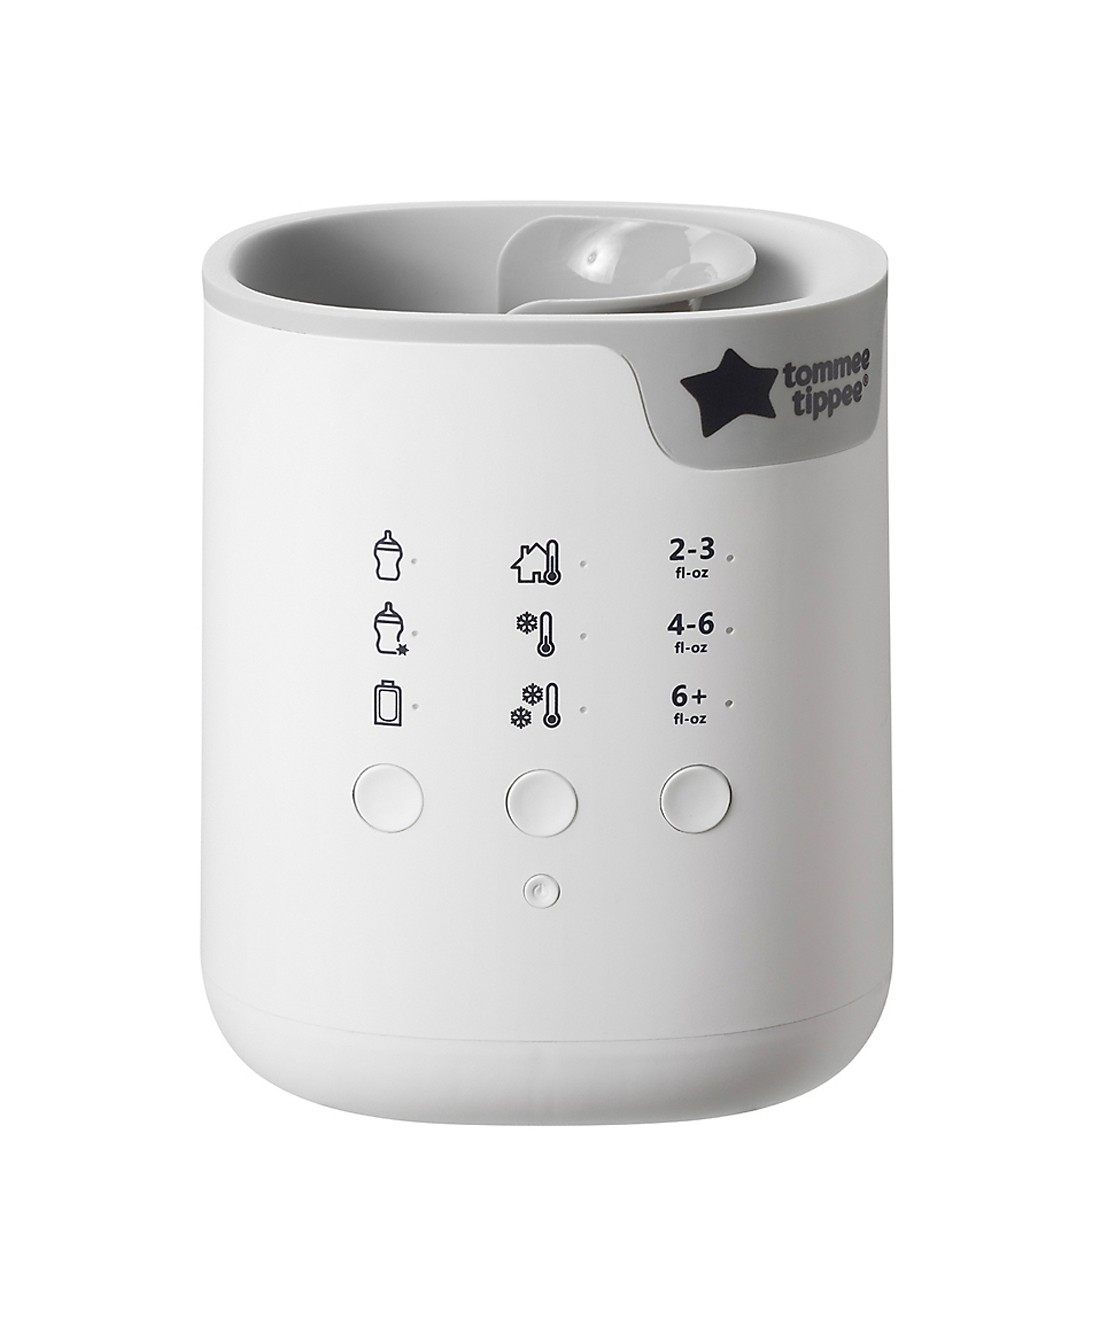 Tommee Tippee Bottle & Pouch Warmer - The Clash